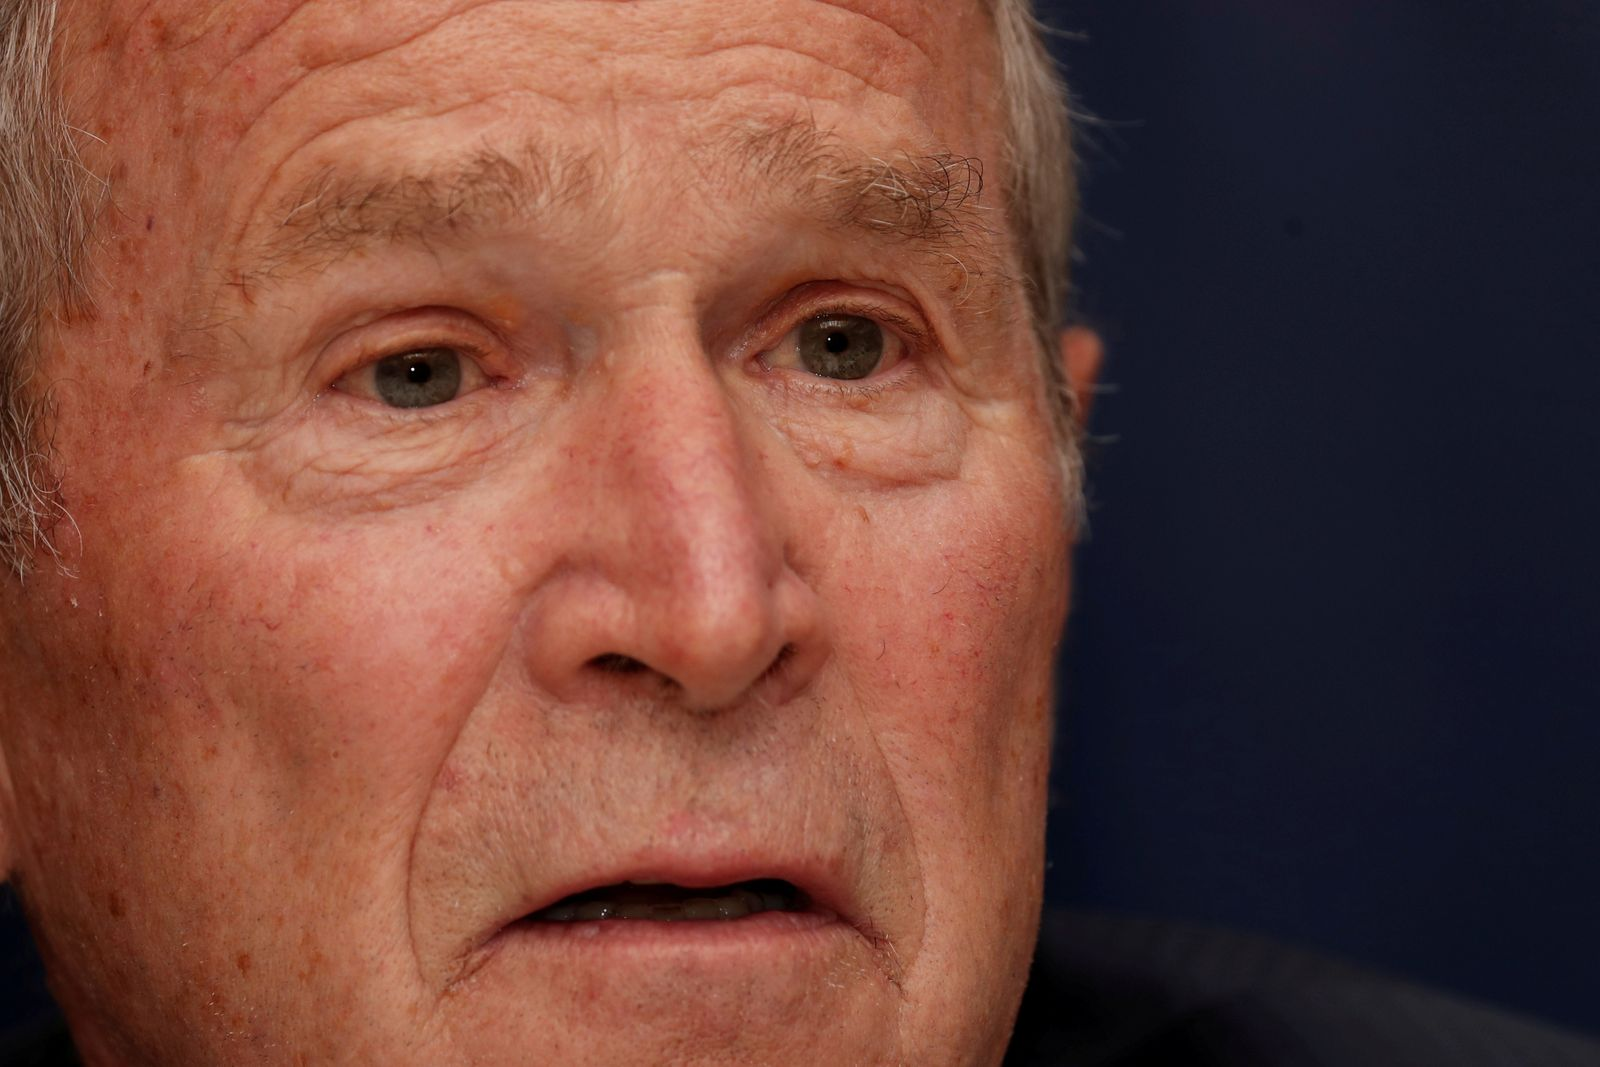 FILE PHOTO: Former U.S. President George W. Bush speaks during the Bloomberg Global Business Forum in New York City